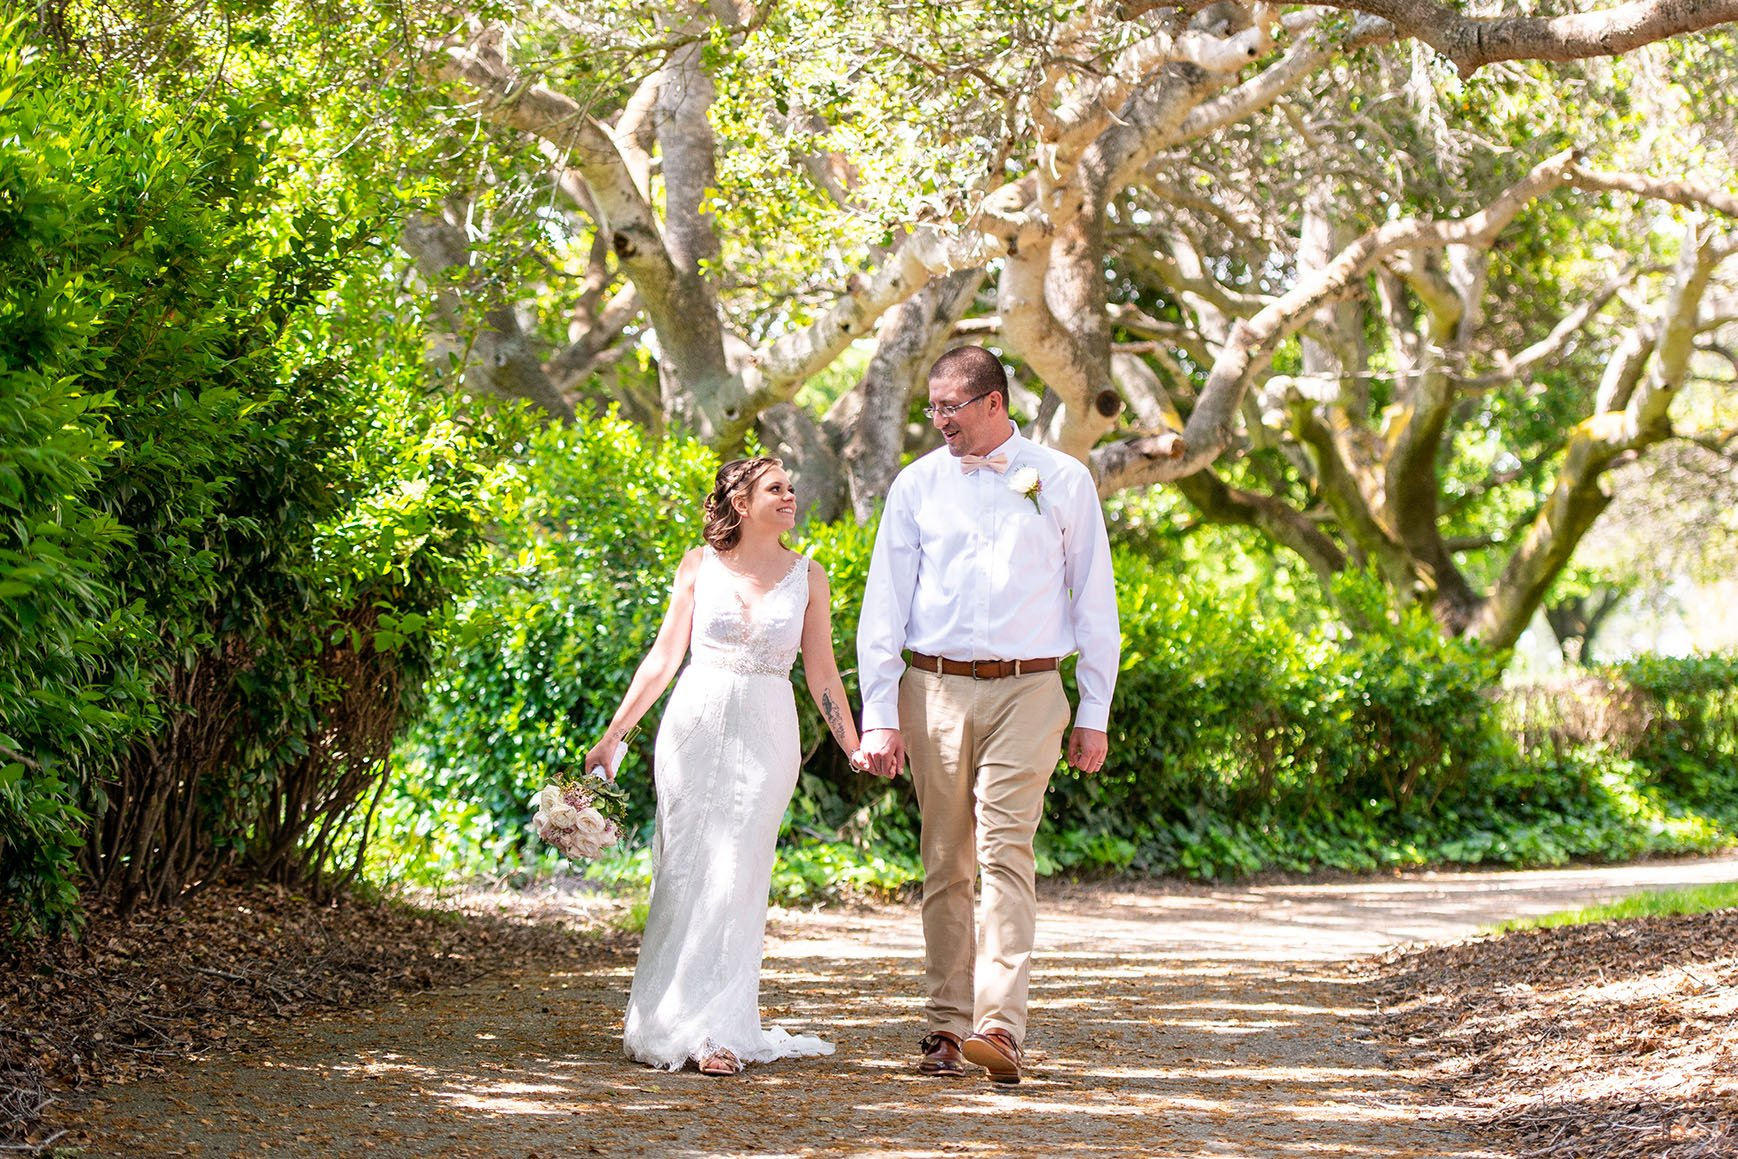 Beautiful photo opportunities on the nature preserve - Carmel - Carmel, California - Monterey County - Wedgewood Weddings